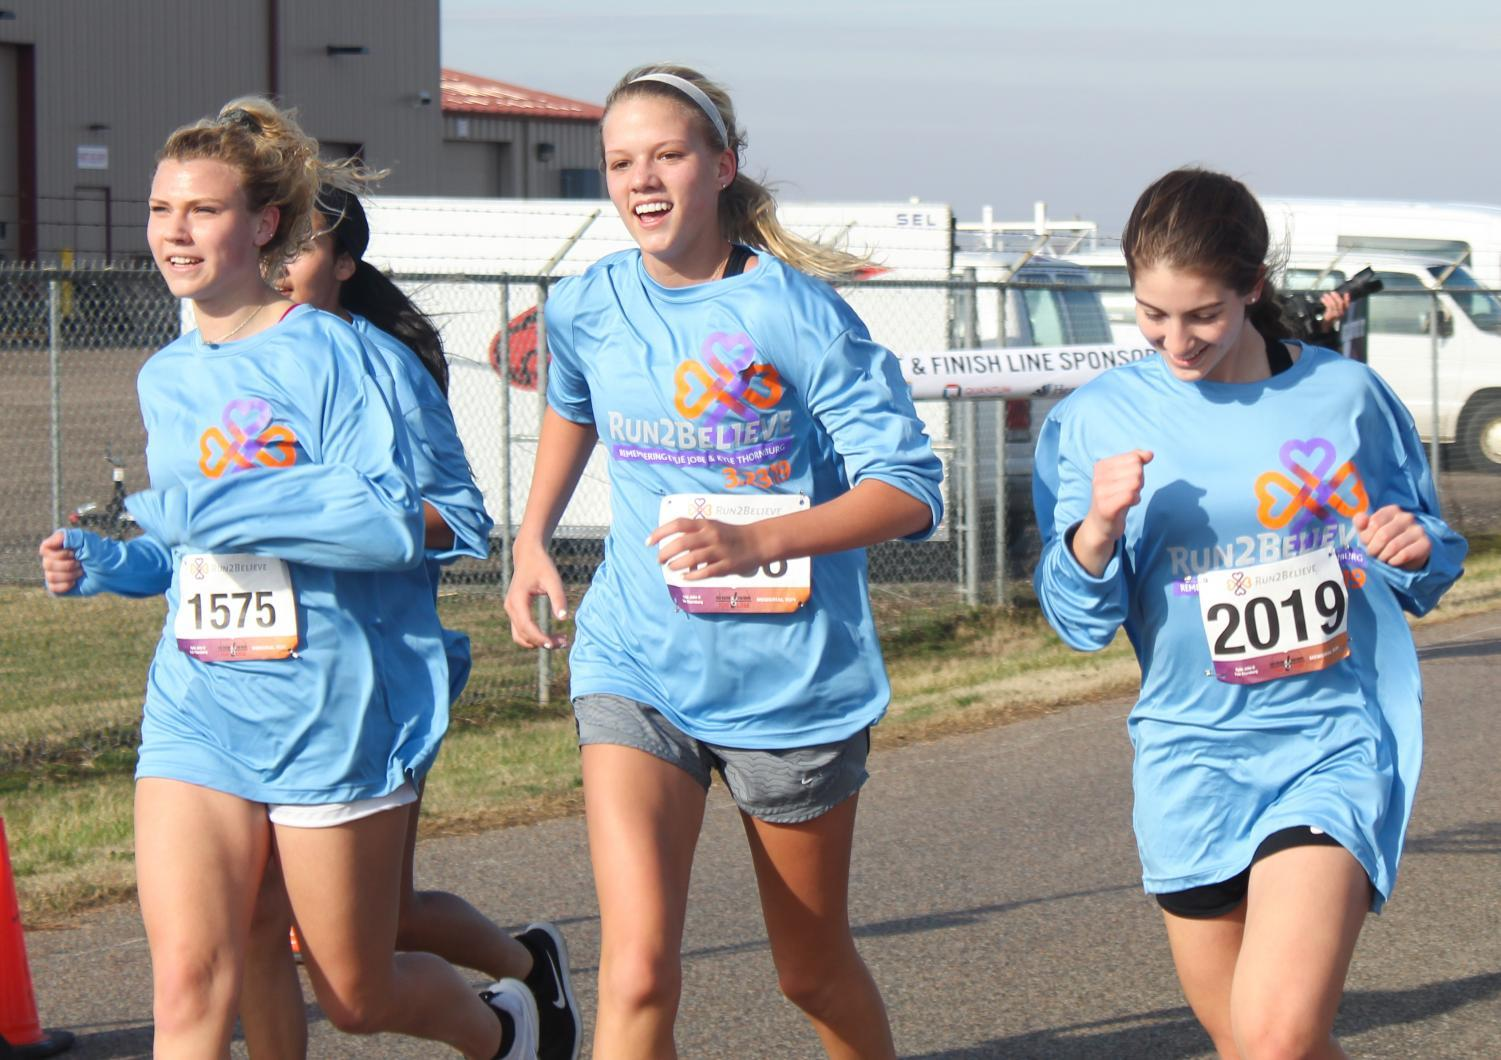 Families+and+students+participating+in+the+annual+Run2Believe+event.+The+event+raises+awareness+for+drinking+and+driving.+